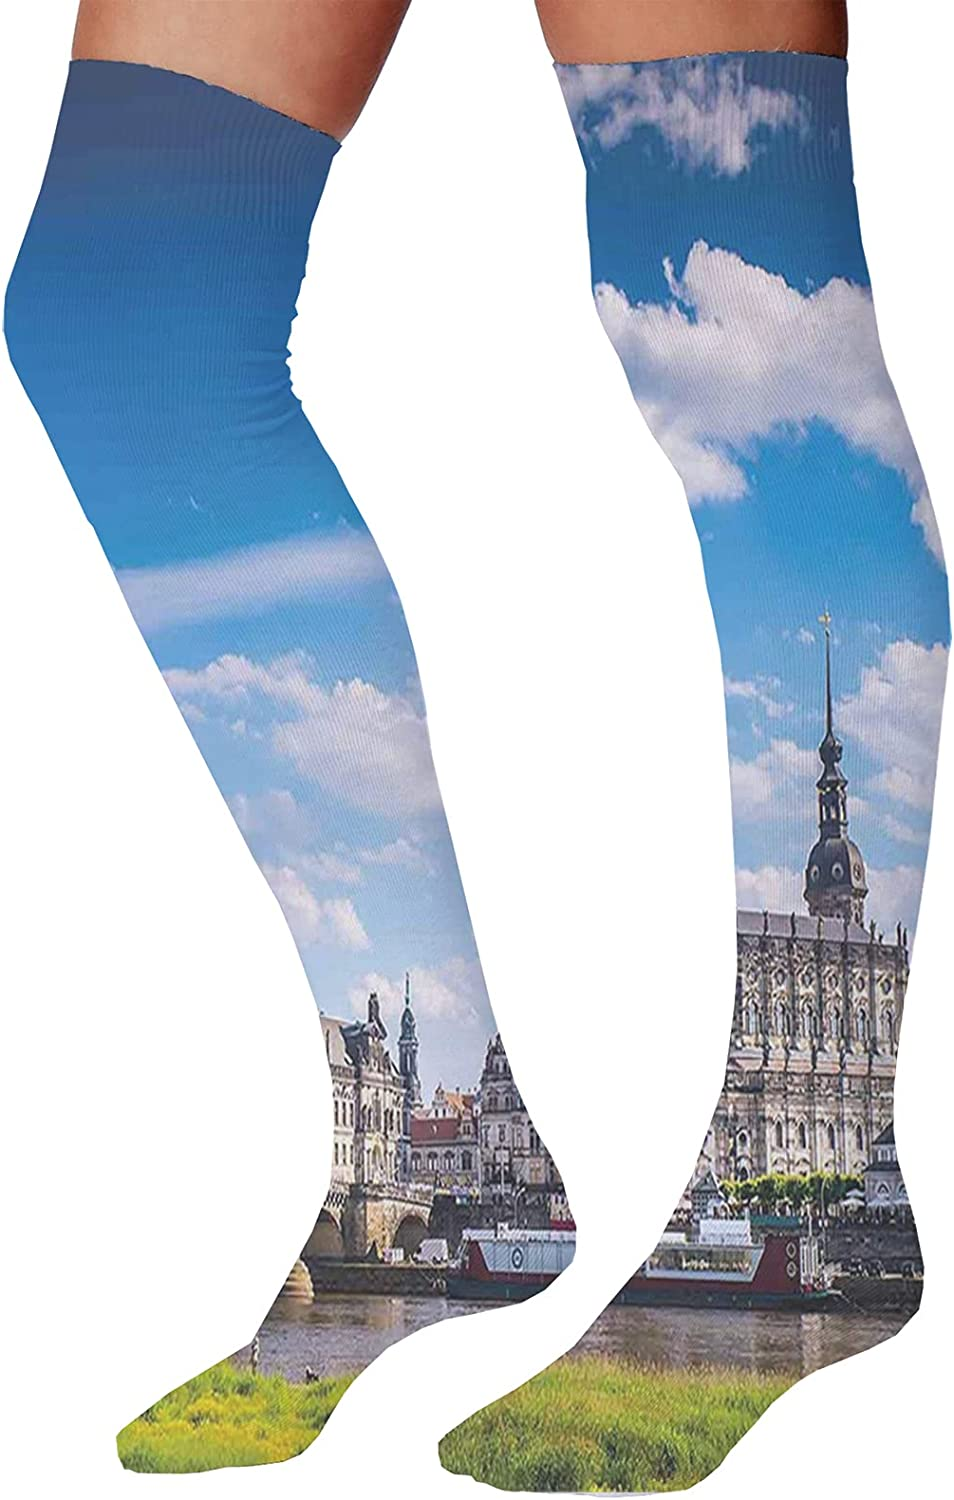 Men's and Women's Fun Socks,Ancient Stone Borders on Mountains Famous Historical Monument Gothic Art